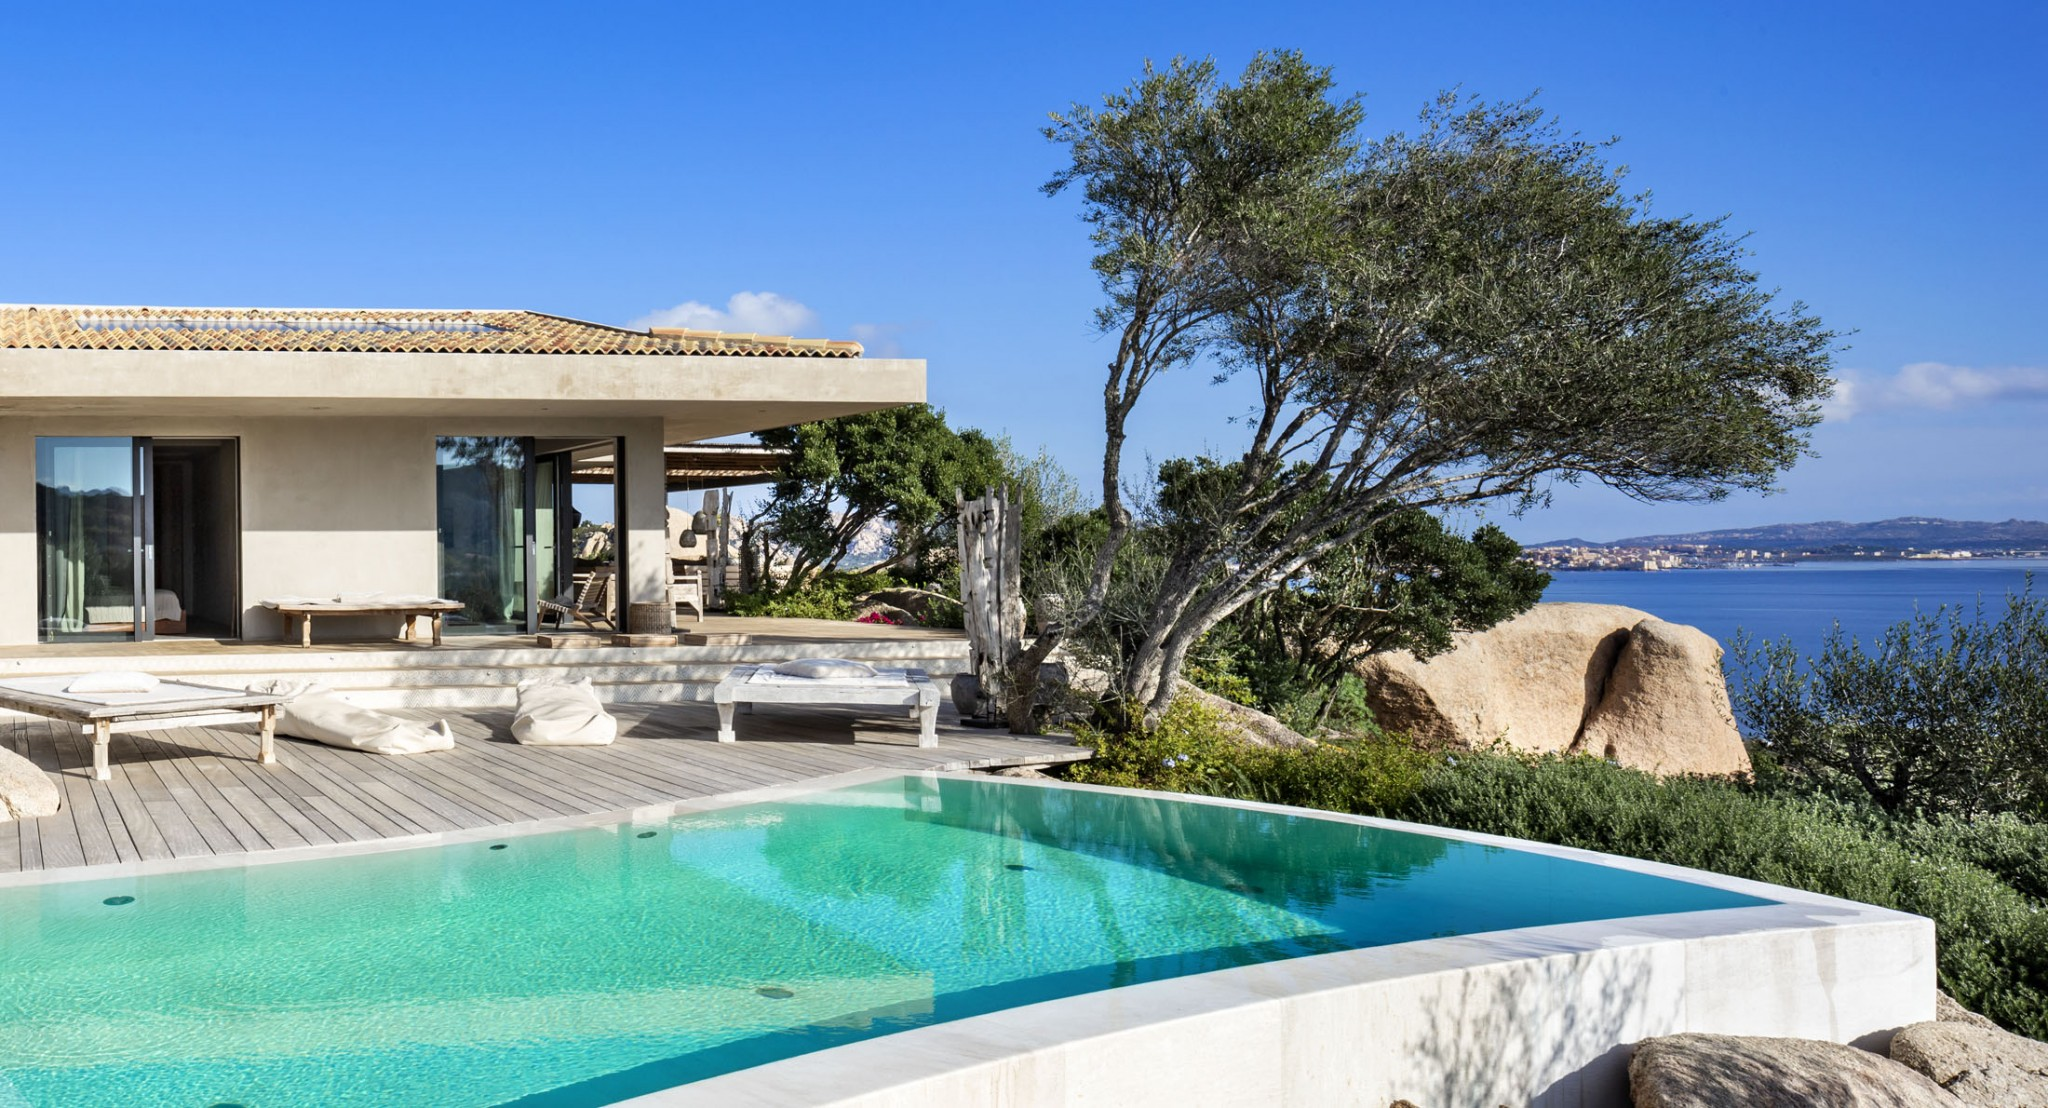 Sardinia, your vacation Home in Italy